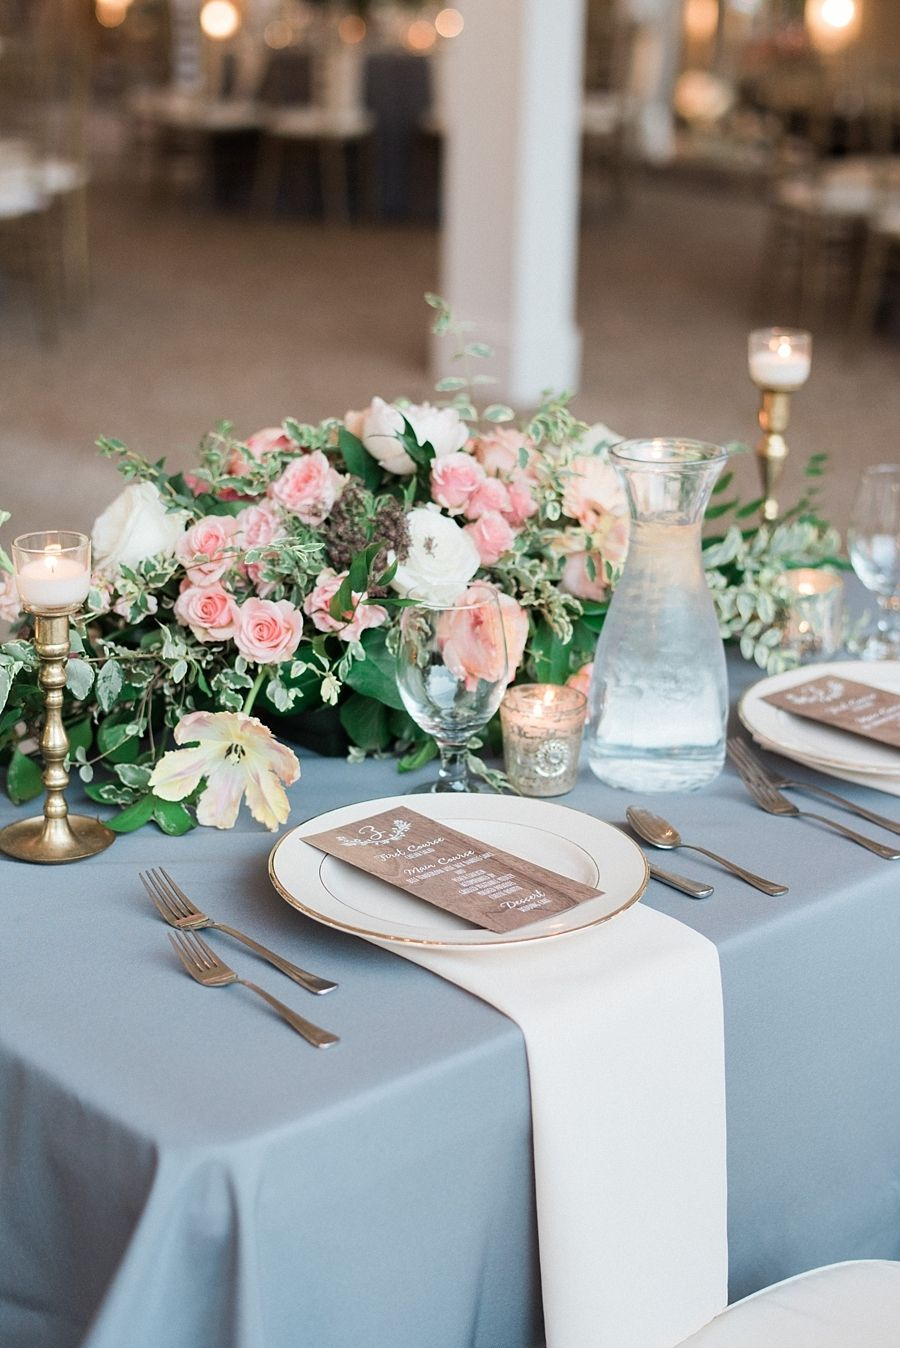 500+ Best rustic wedding/country chic images in 2020 | wedding, rustic  wedding, country chic wedding